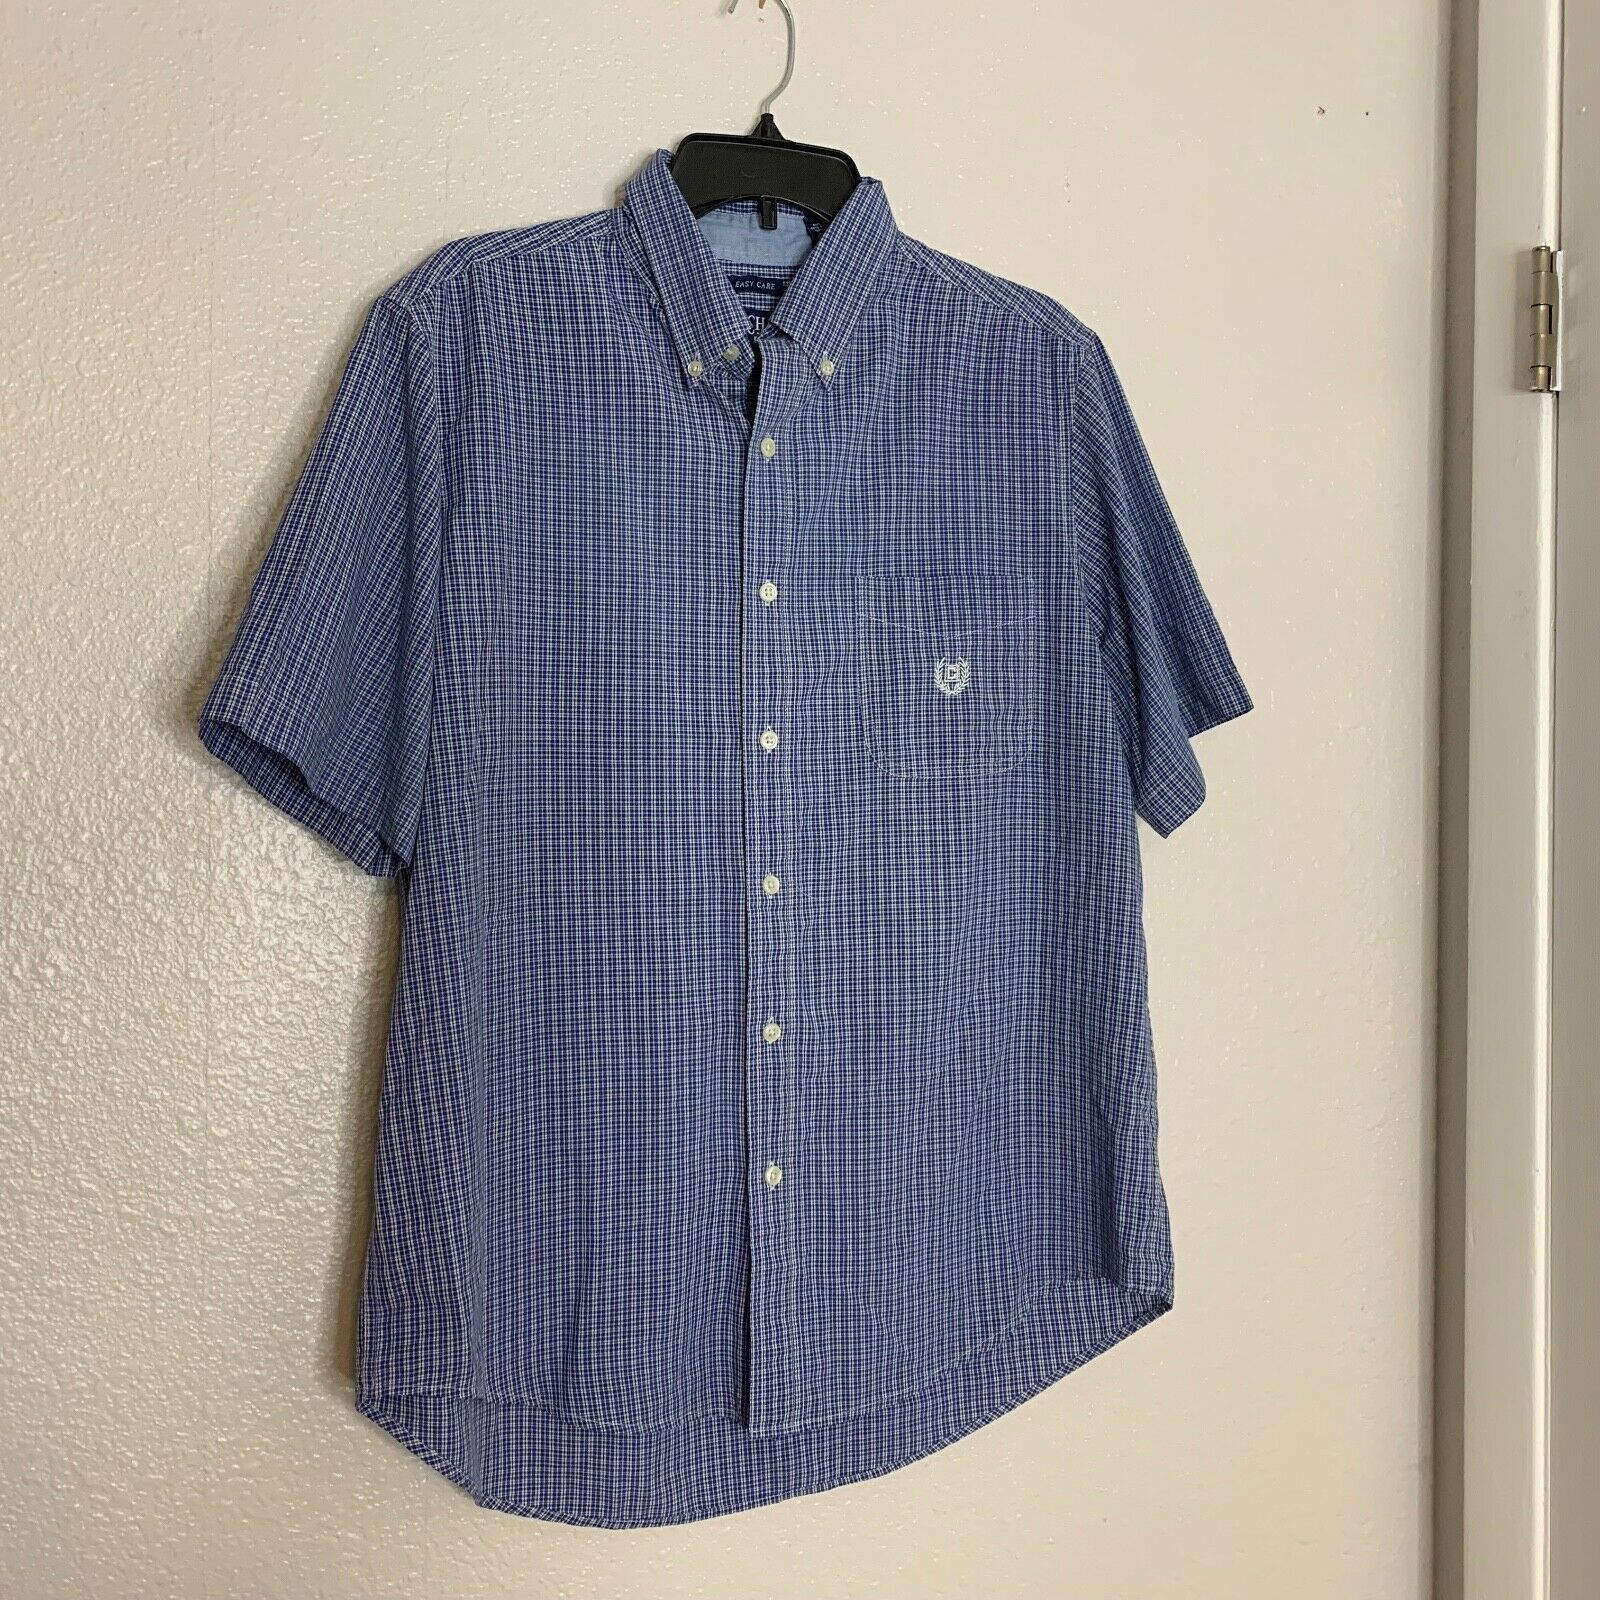 Chaps Mens Sz L Blue Short Sleeve Shirt Button Up - $8.02